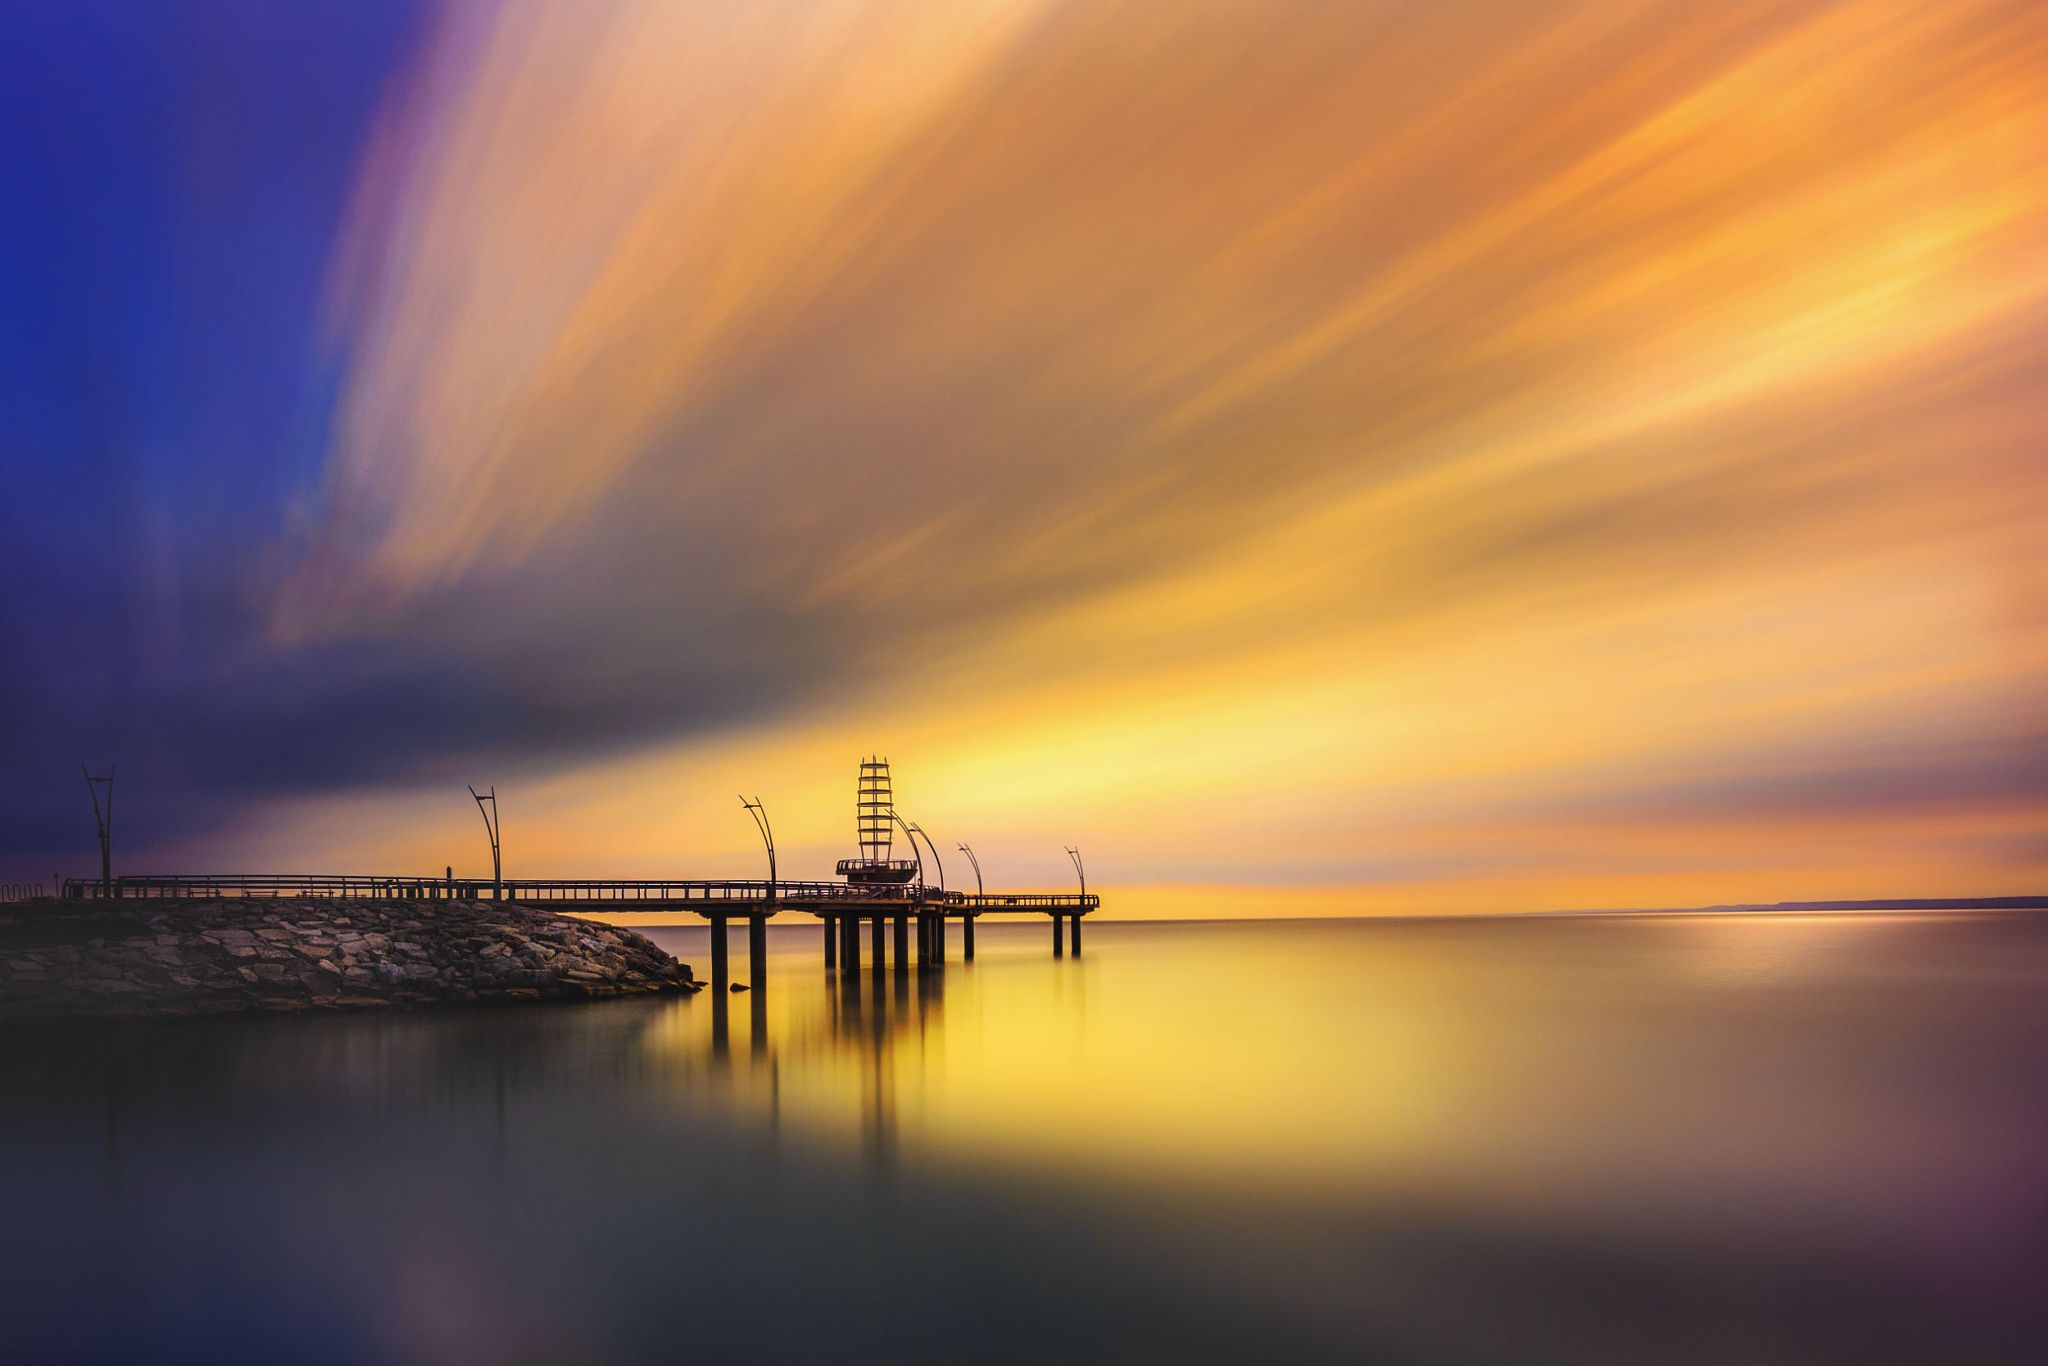 Brant St Pier - This is 9 min exposure of the Brant St Pier in Burlington Ontario. I took it during sunrise and was amazed at the colours that showed up when I got home and processed it. This is an example of why I love long exposure photography, the light just hits the sensor in a slightly different way.  I'm also very humbled that this image is going to be showcased on Landscape Magazines website and social media on March 26th, then being published in the magazine. Will be my first…